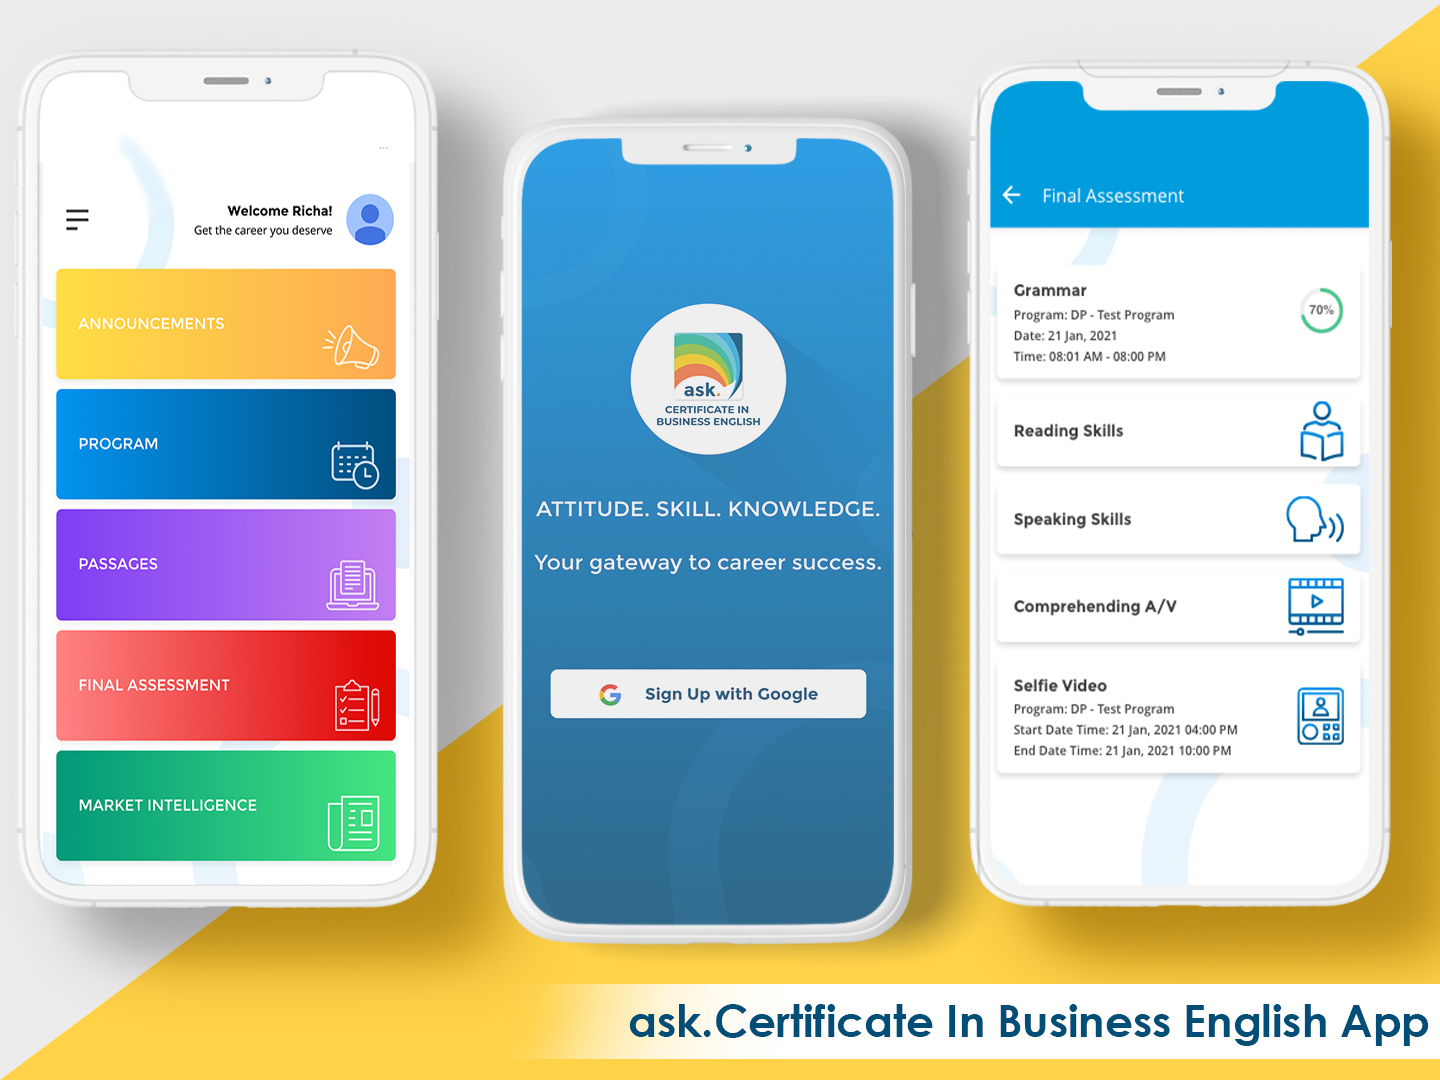 ask. Certificate in Business English